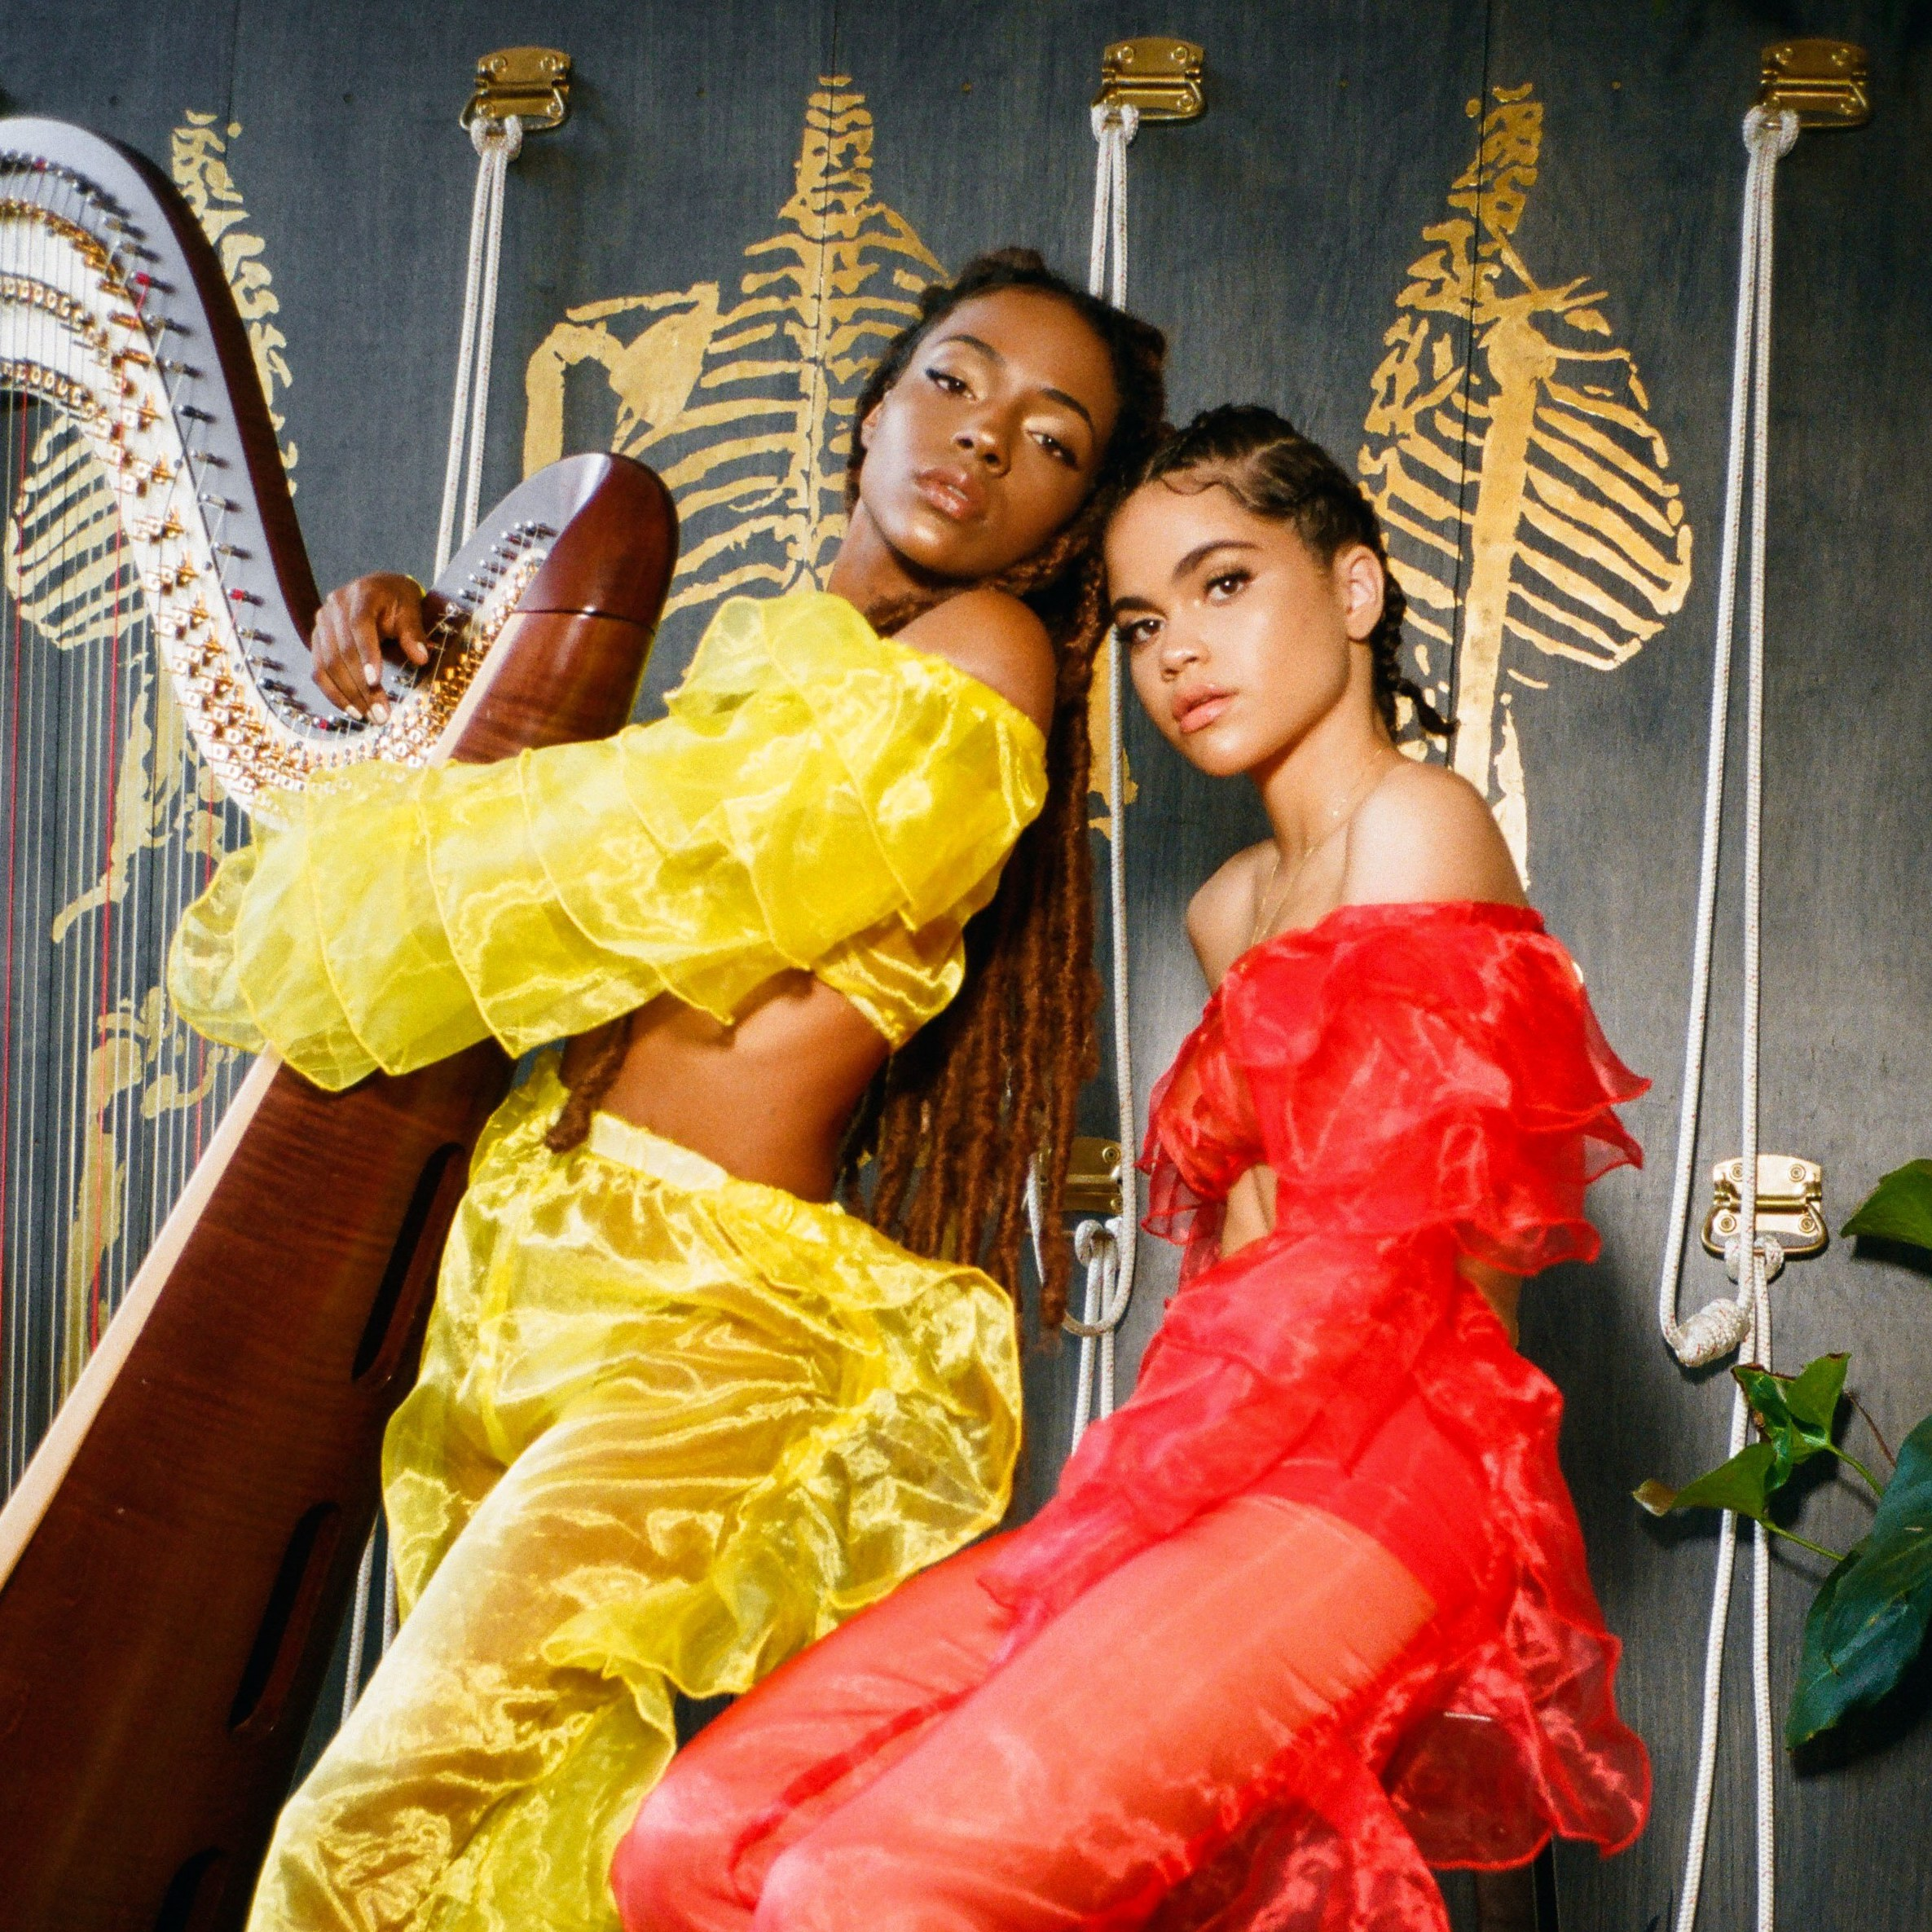 How Slashed by Tia Set a New Standard for Instagram Fashion Brands